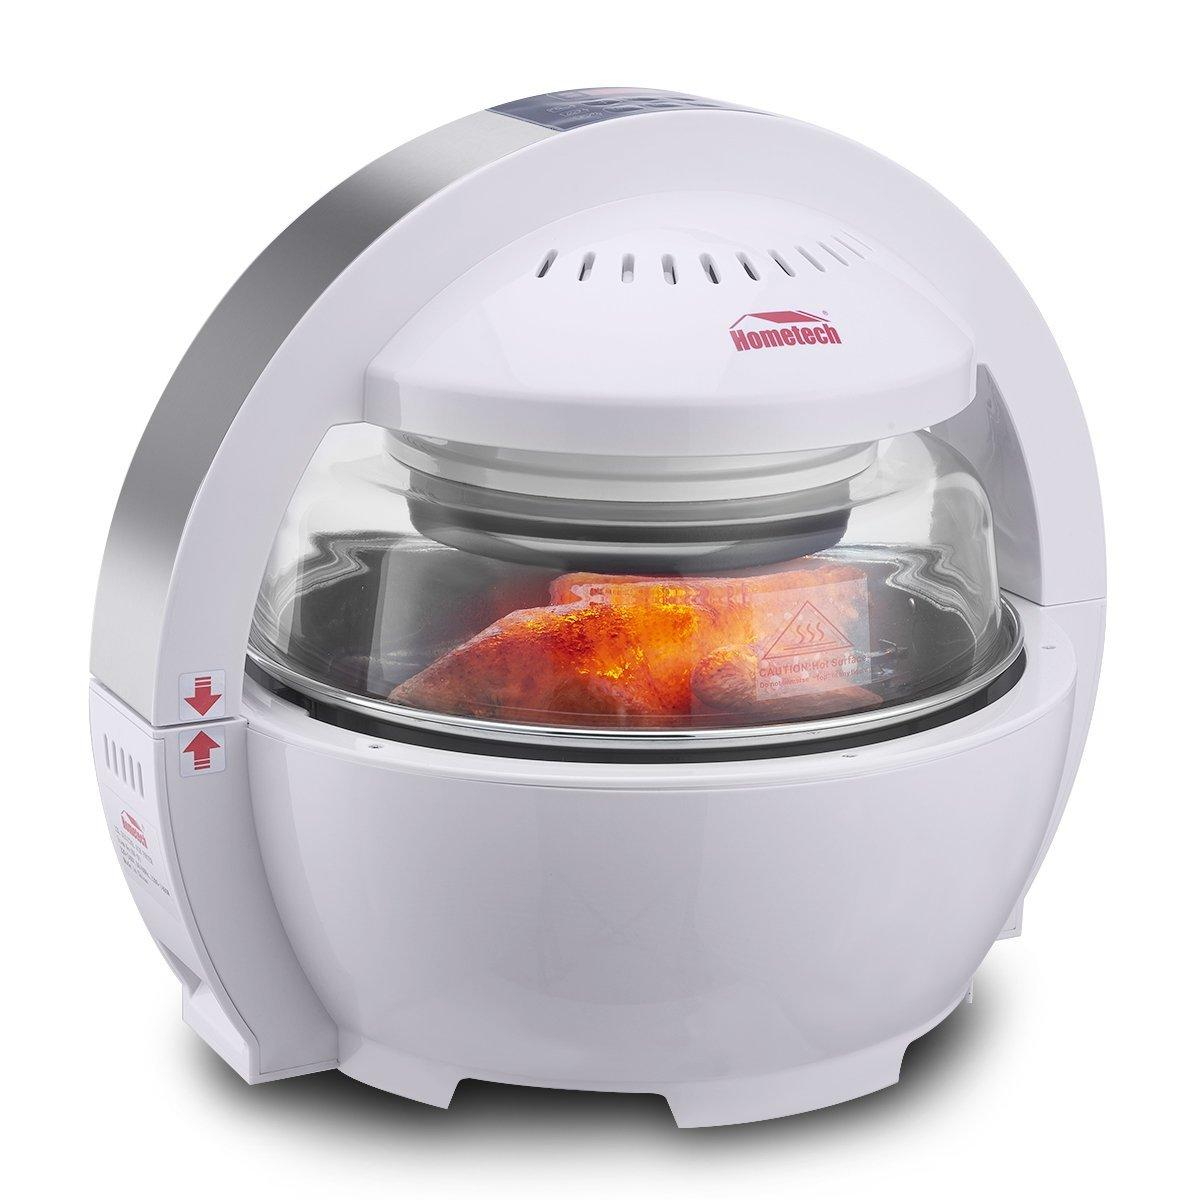 Hometech Patented 1200W 13L Spaceship Air Fryer